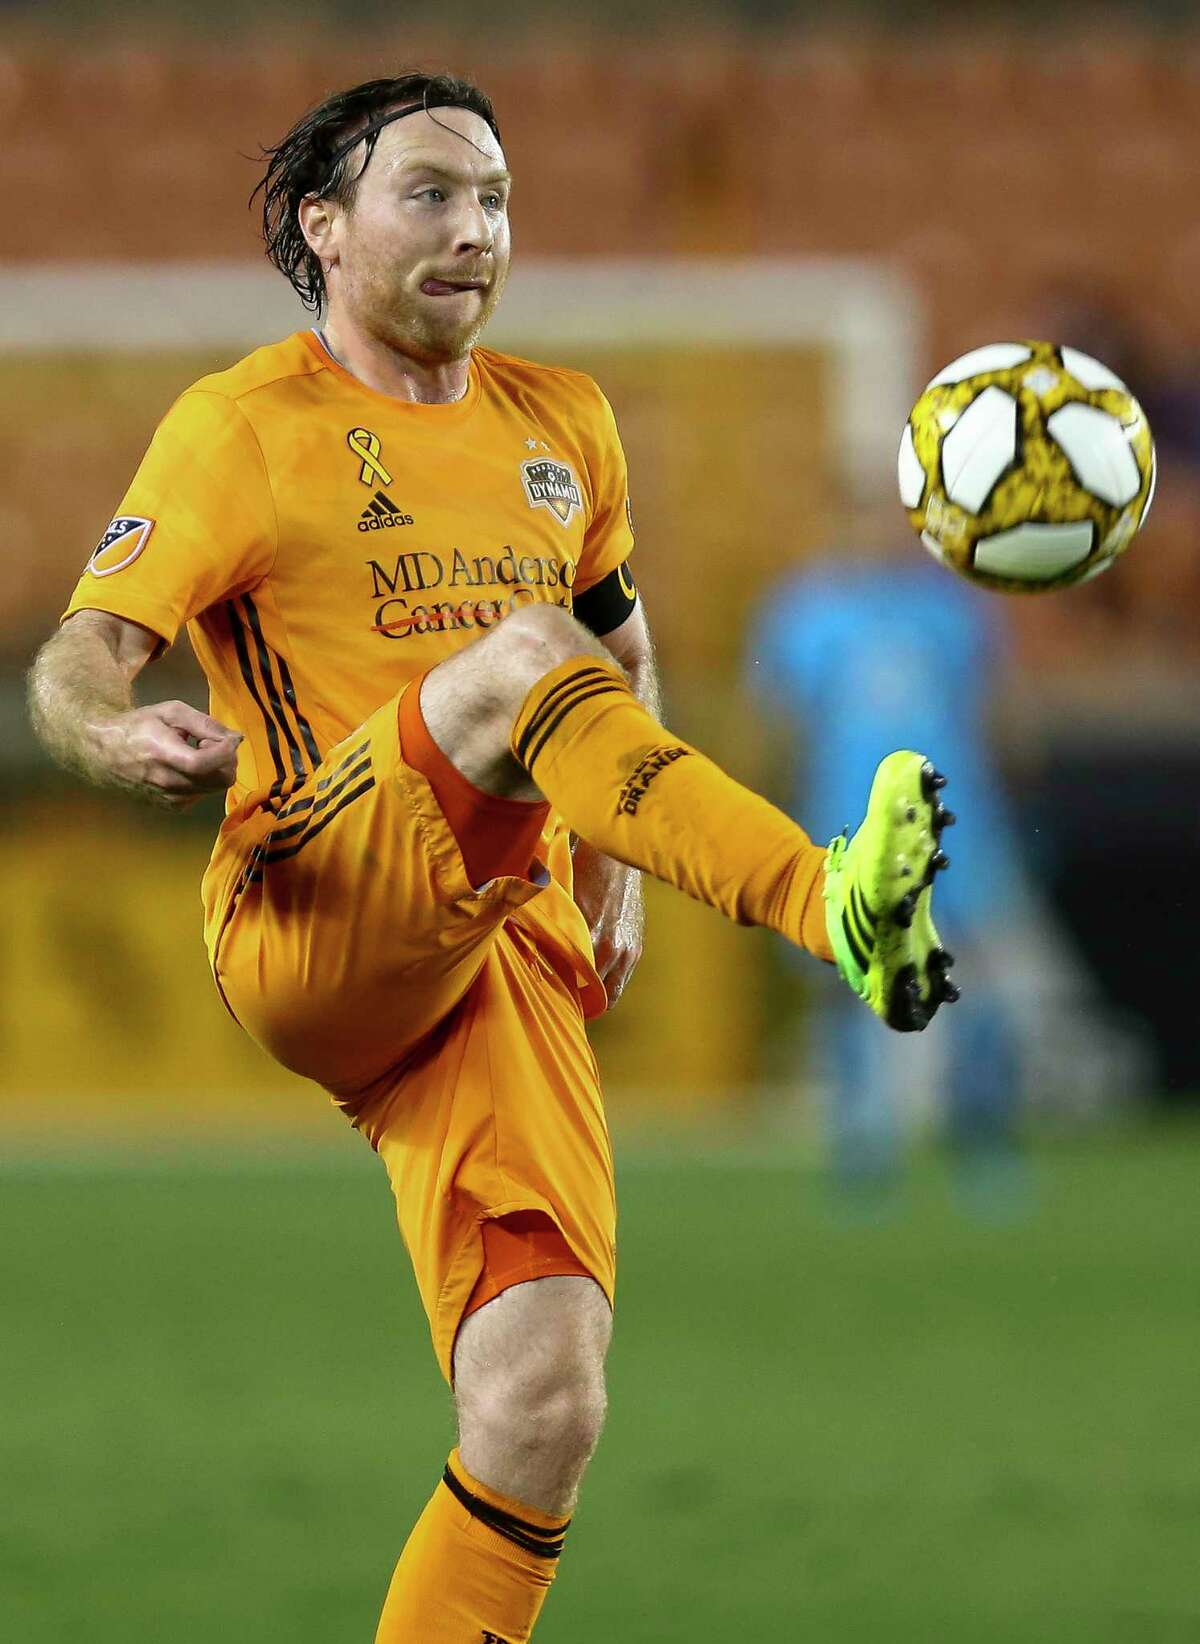 Houston Dynamo midfielder Thomas McNamara (11) brings down a ball to gain control against Minnesota United FC during the first half of an MLS match at BBVA Stadium Wednesday, Sept. 11, 2019, in Houston.